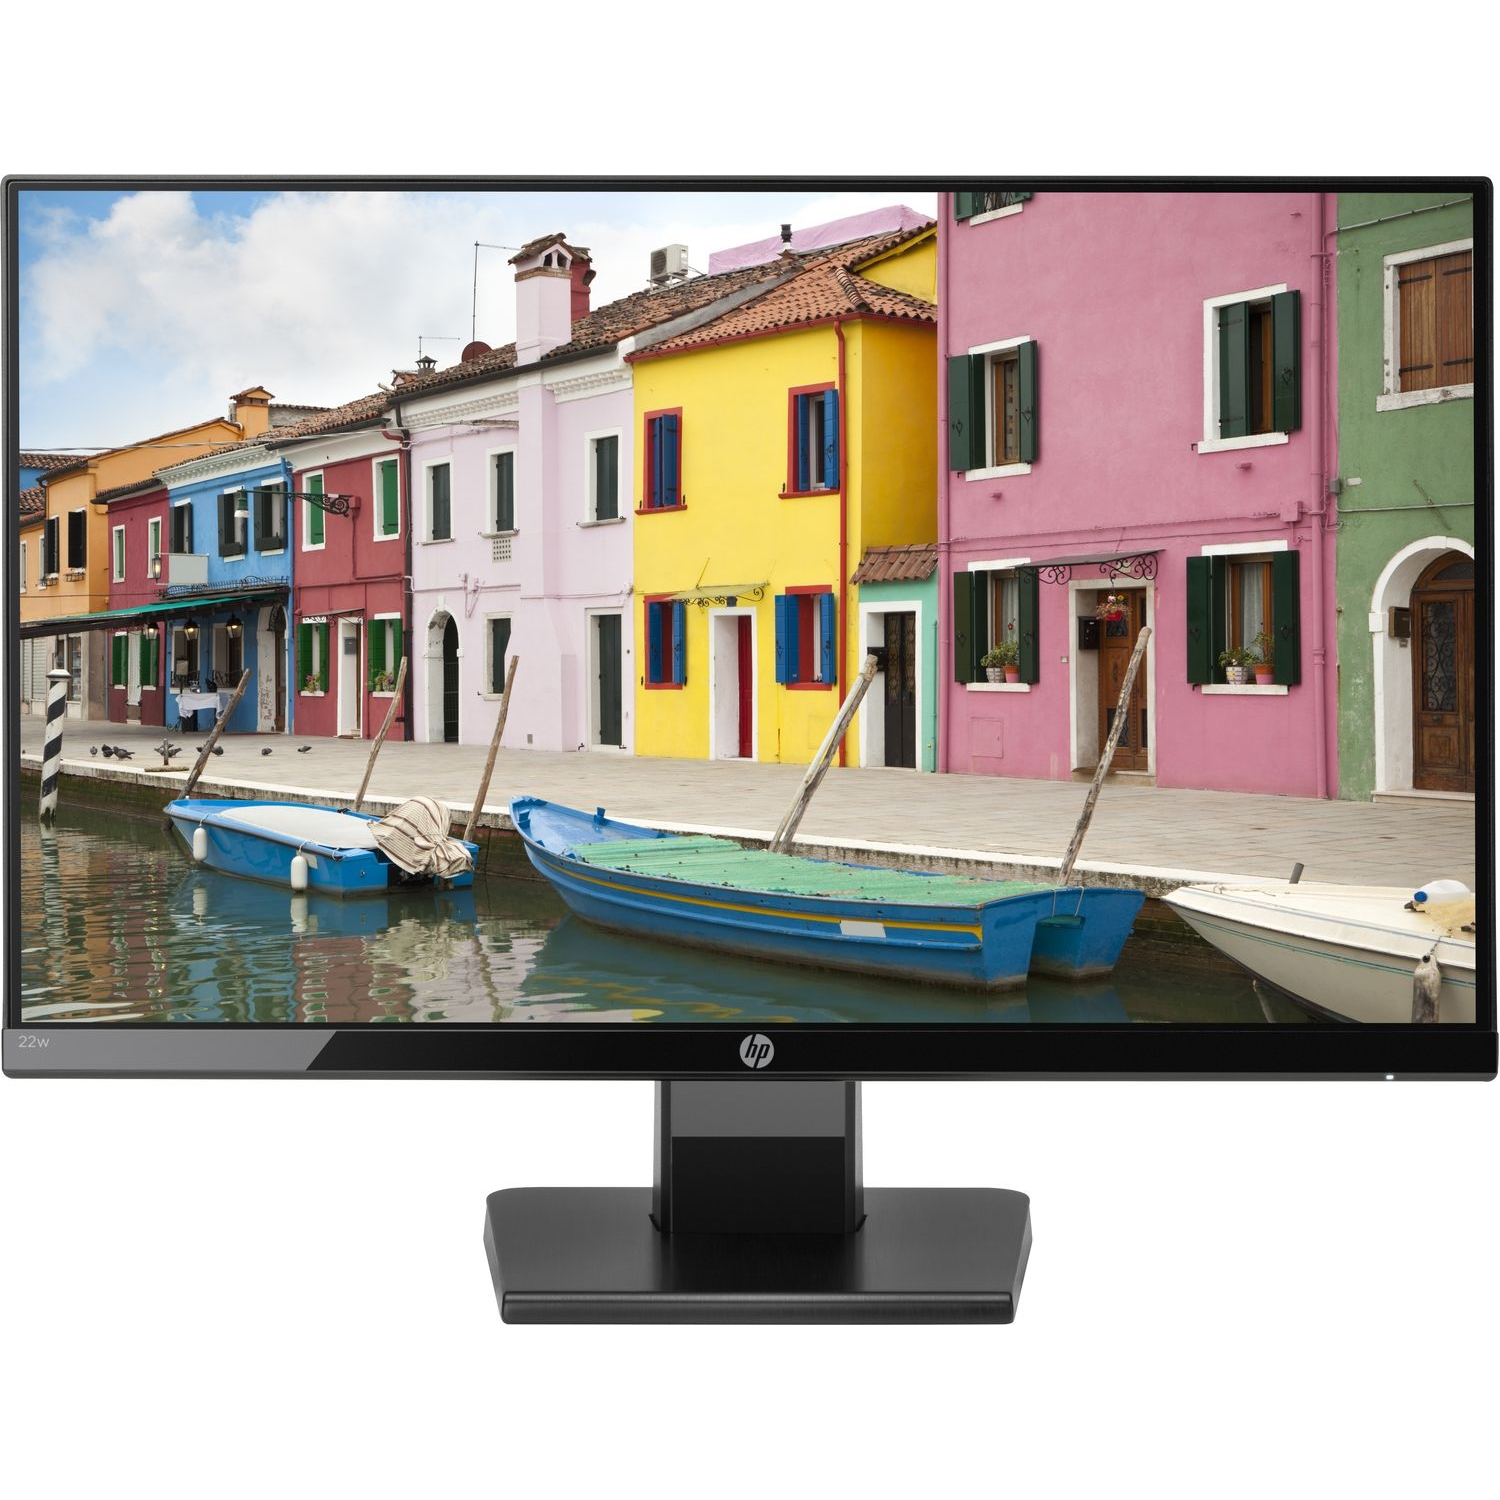 "HP 24W 1CA86AA 23.8"" 5MS 1920x1080 VGA/HDMI VESA SİYAH IPS LED MONITOR"